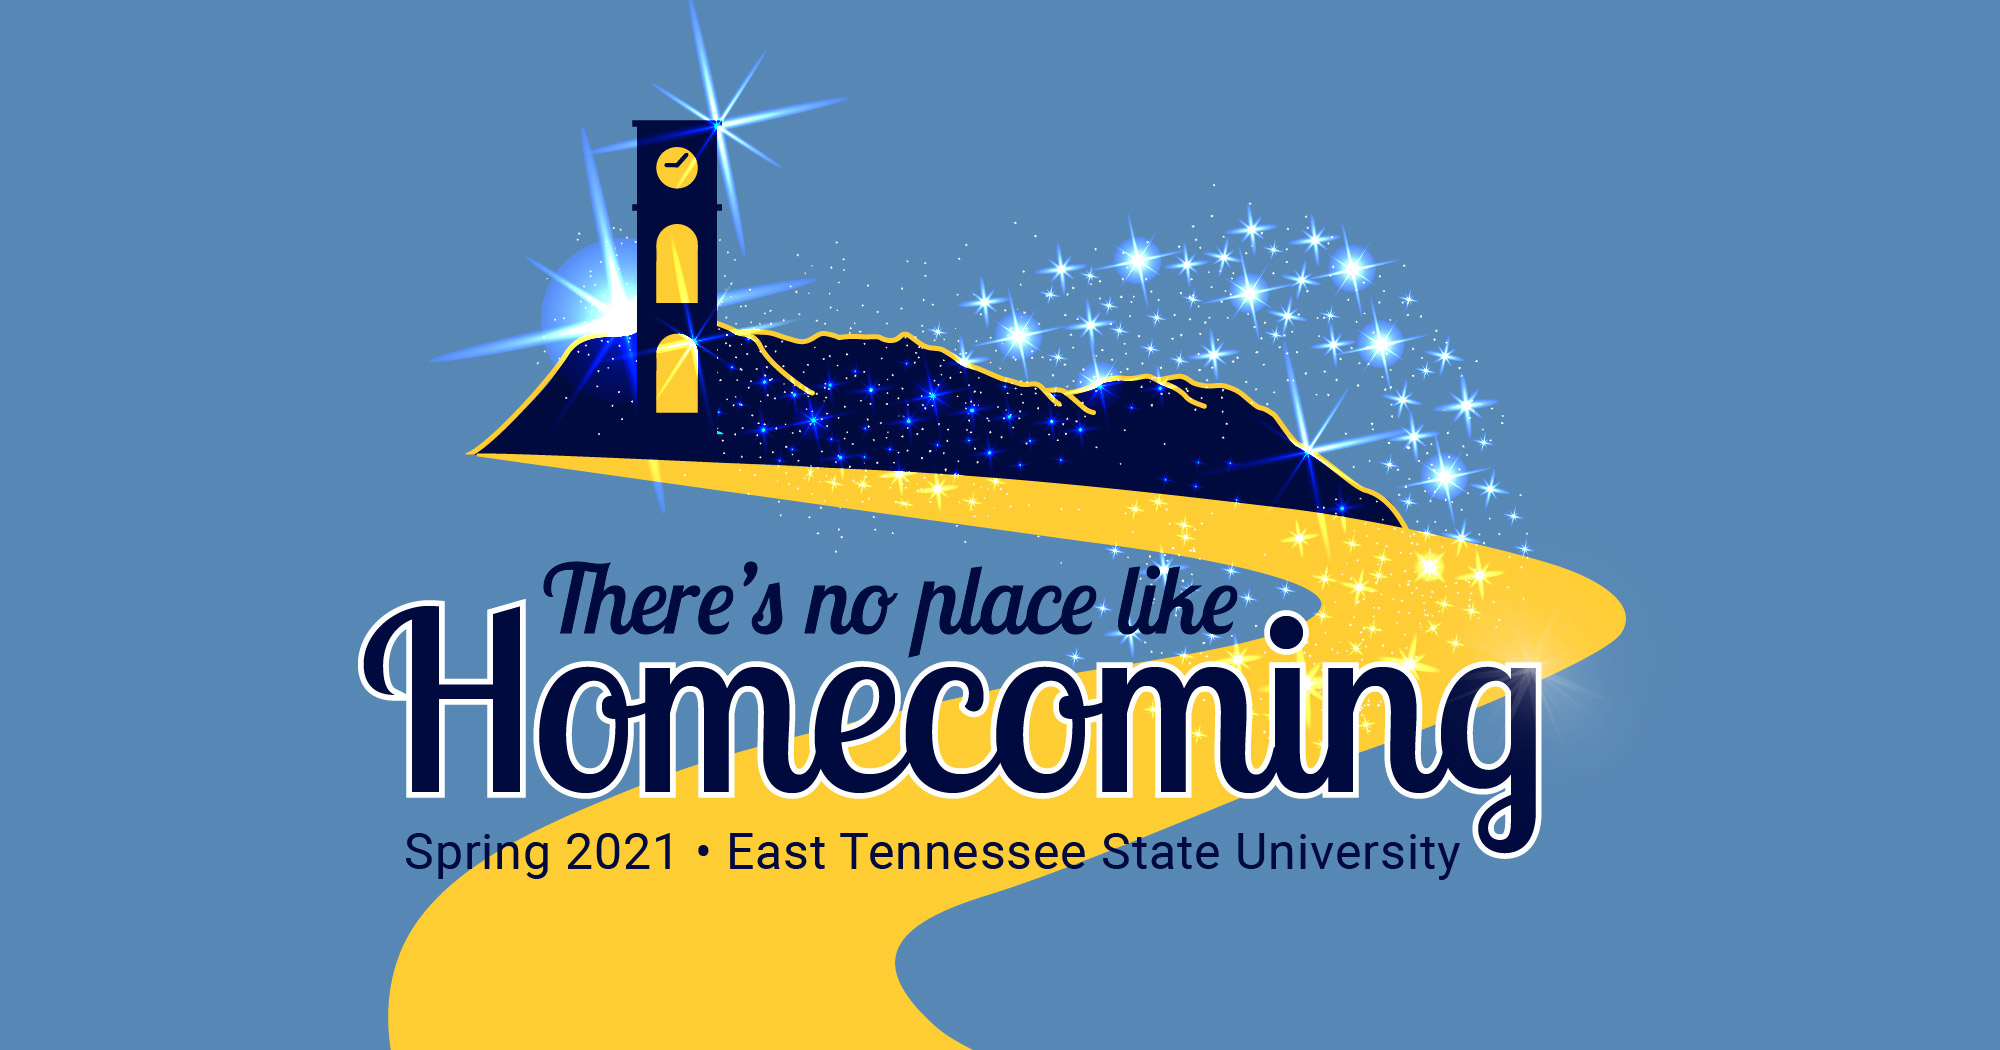 Homecoming Spring 2021